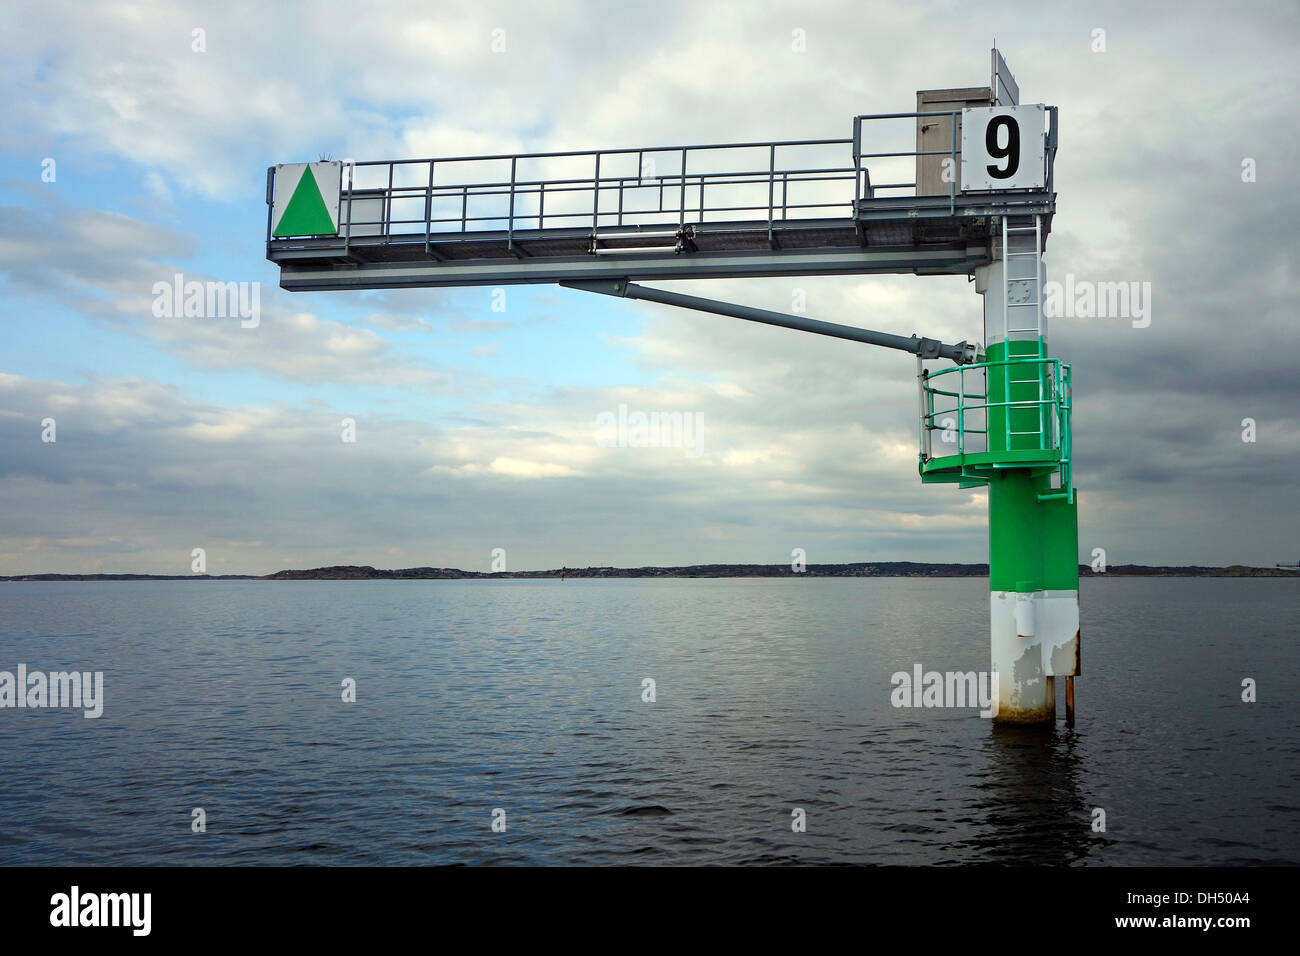 Lateral green starboard marker - Stock Image